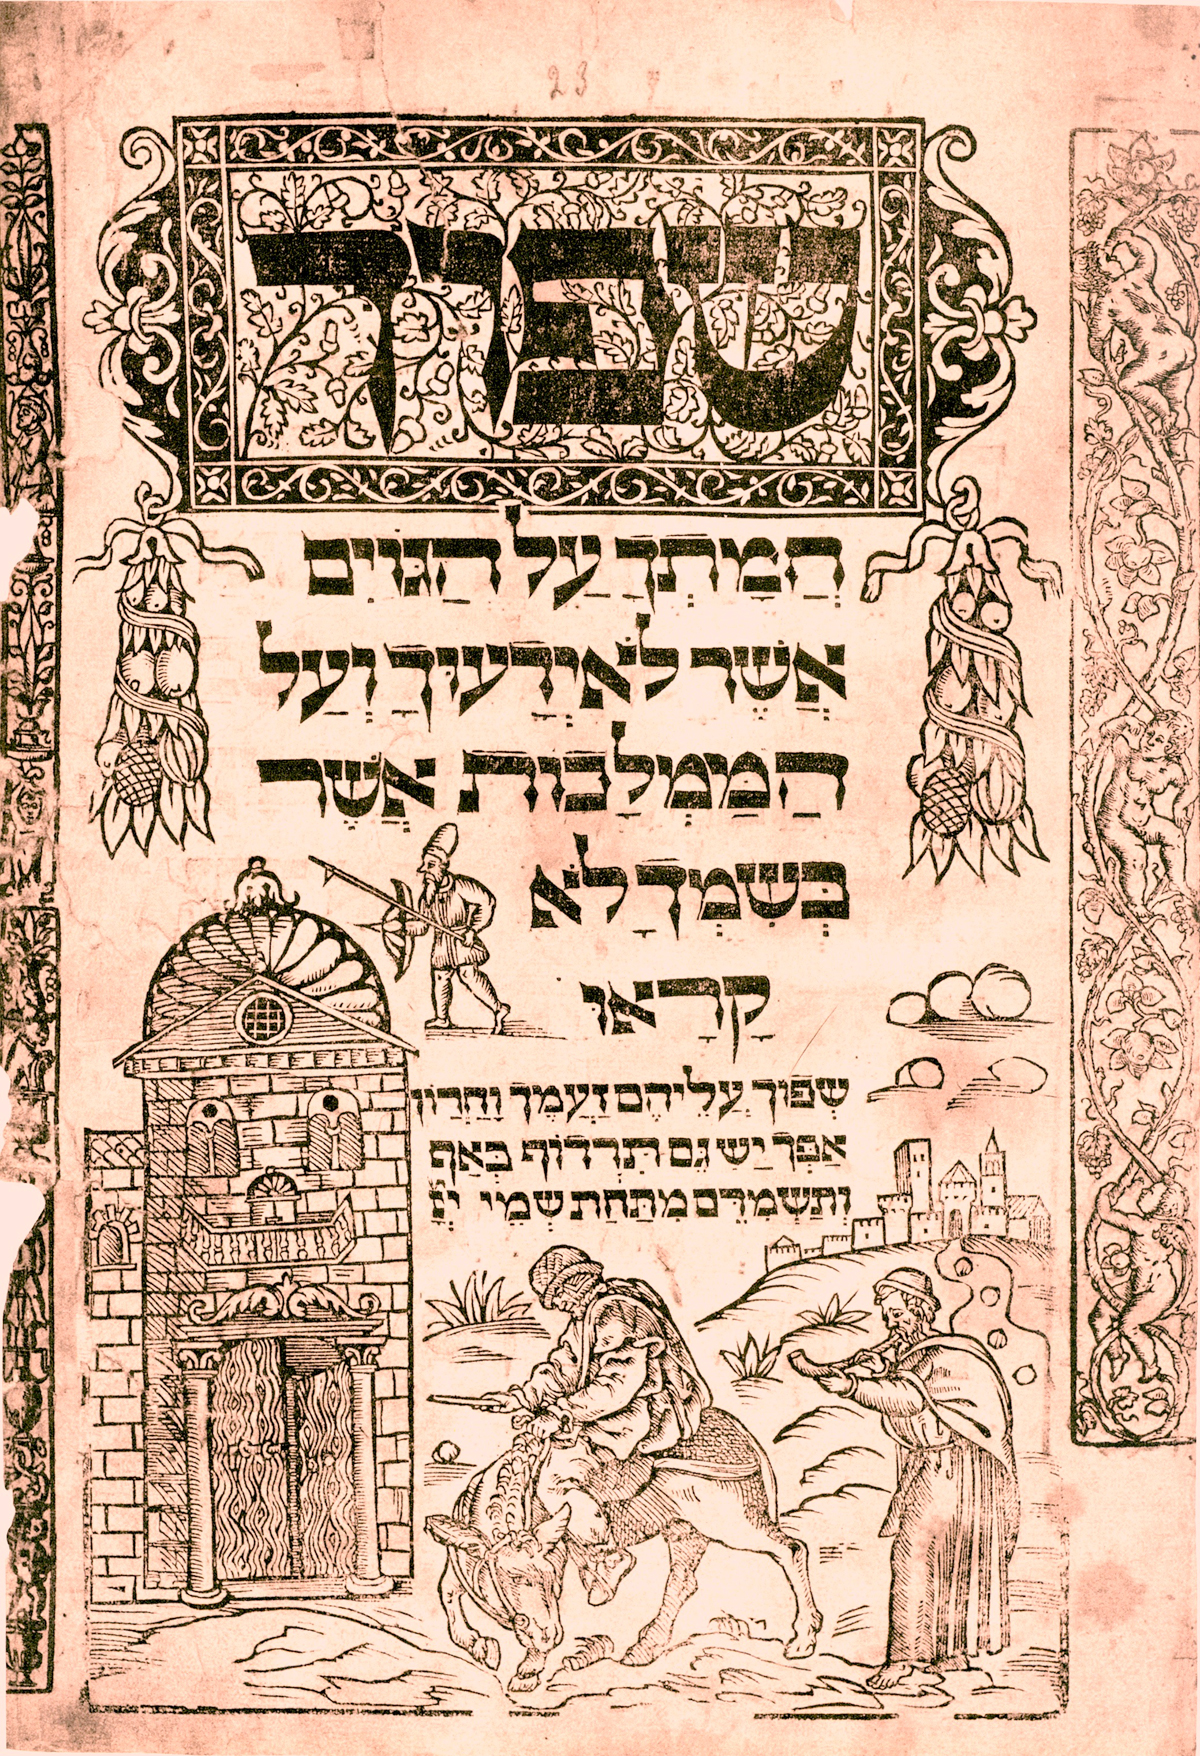 Pour out Your wrath Mantua Haggadah (1560) Courtesy Jewish Theological Seminary Library